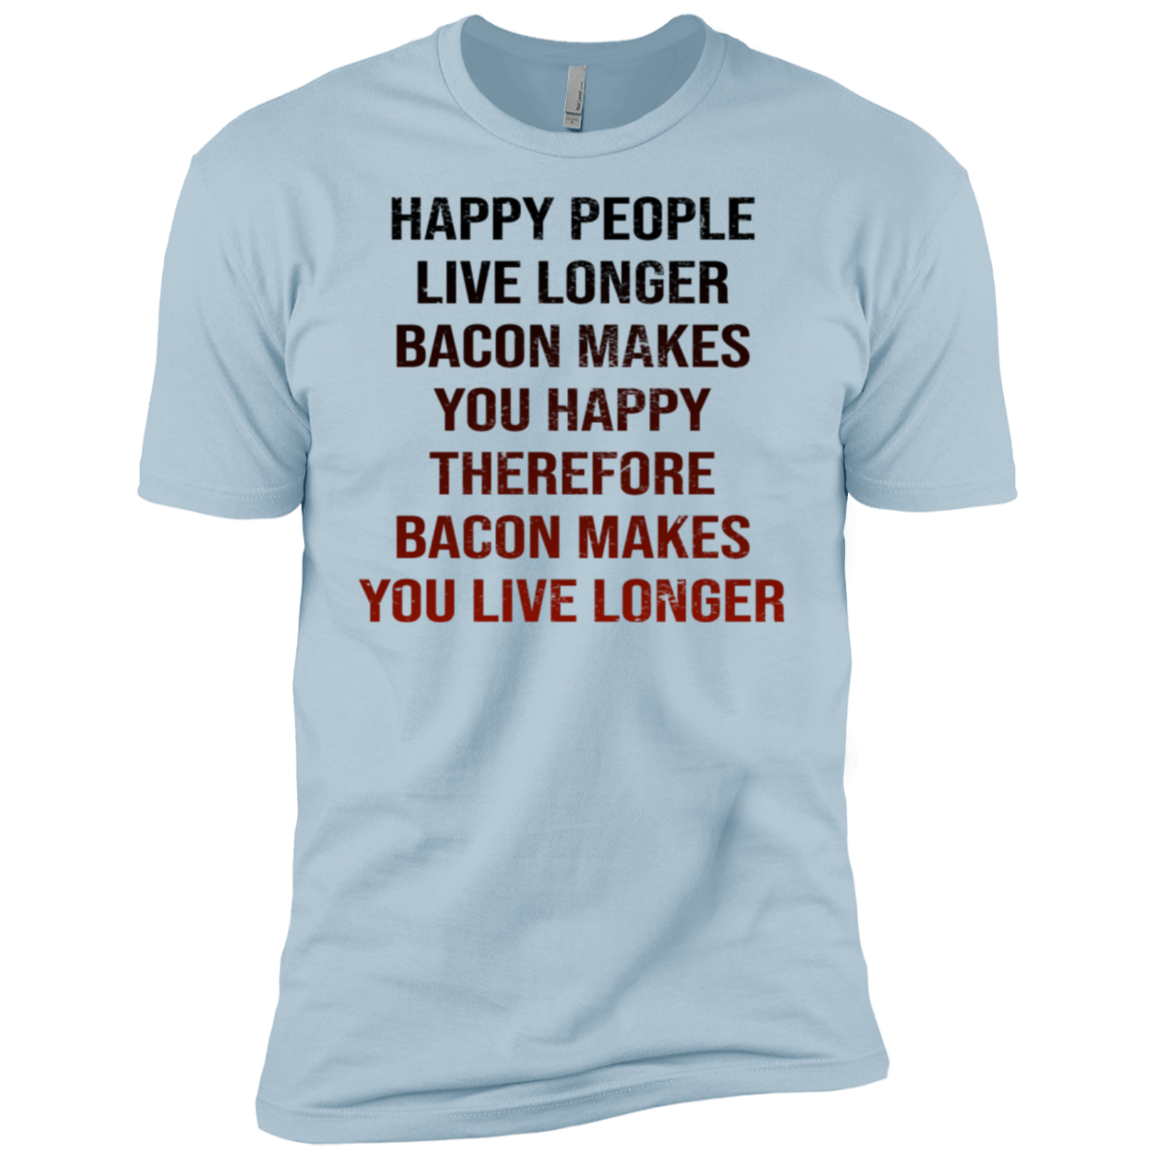 Happy People Live Longer Bacon Makes You Happy Therefore Bacon Makes You Live Longer Men's Classic Tee